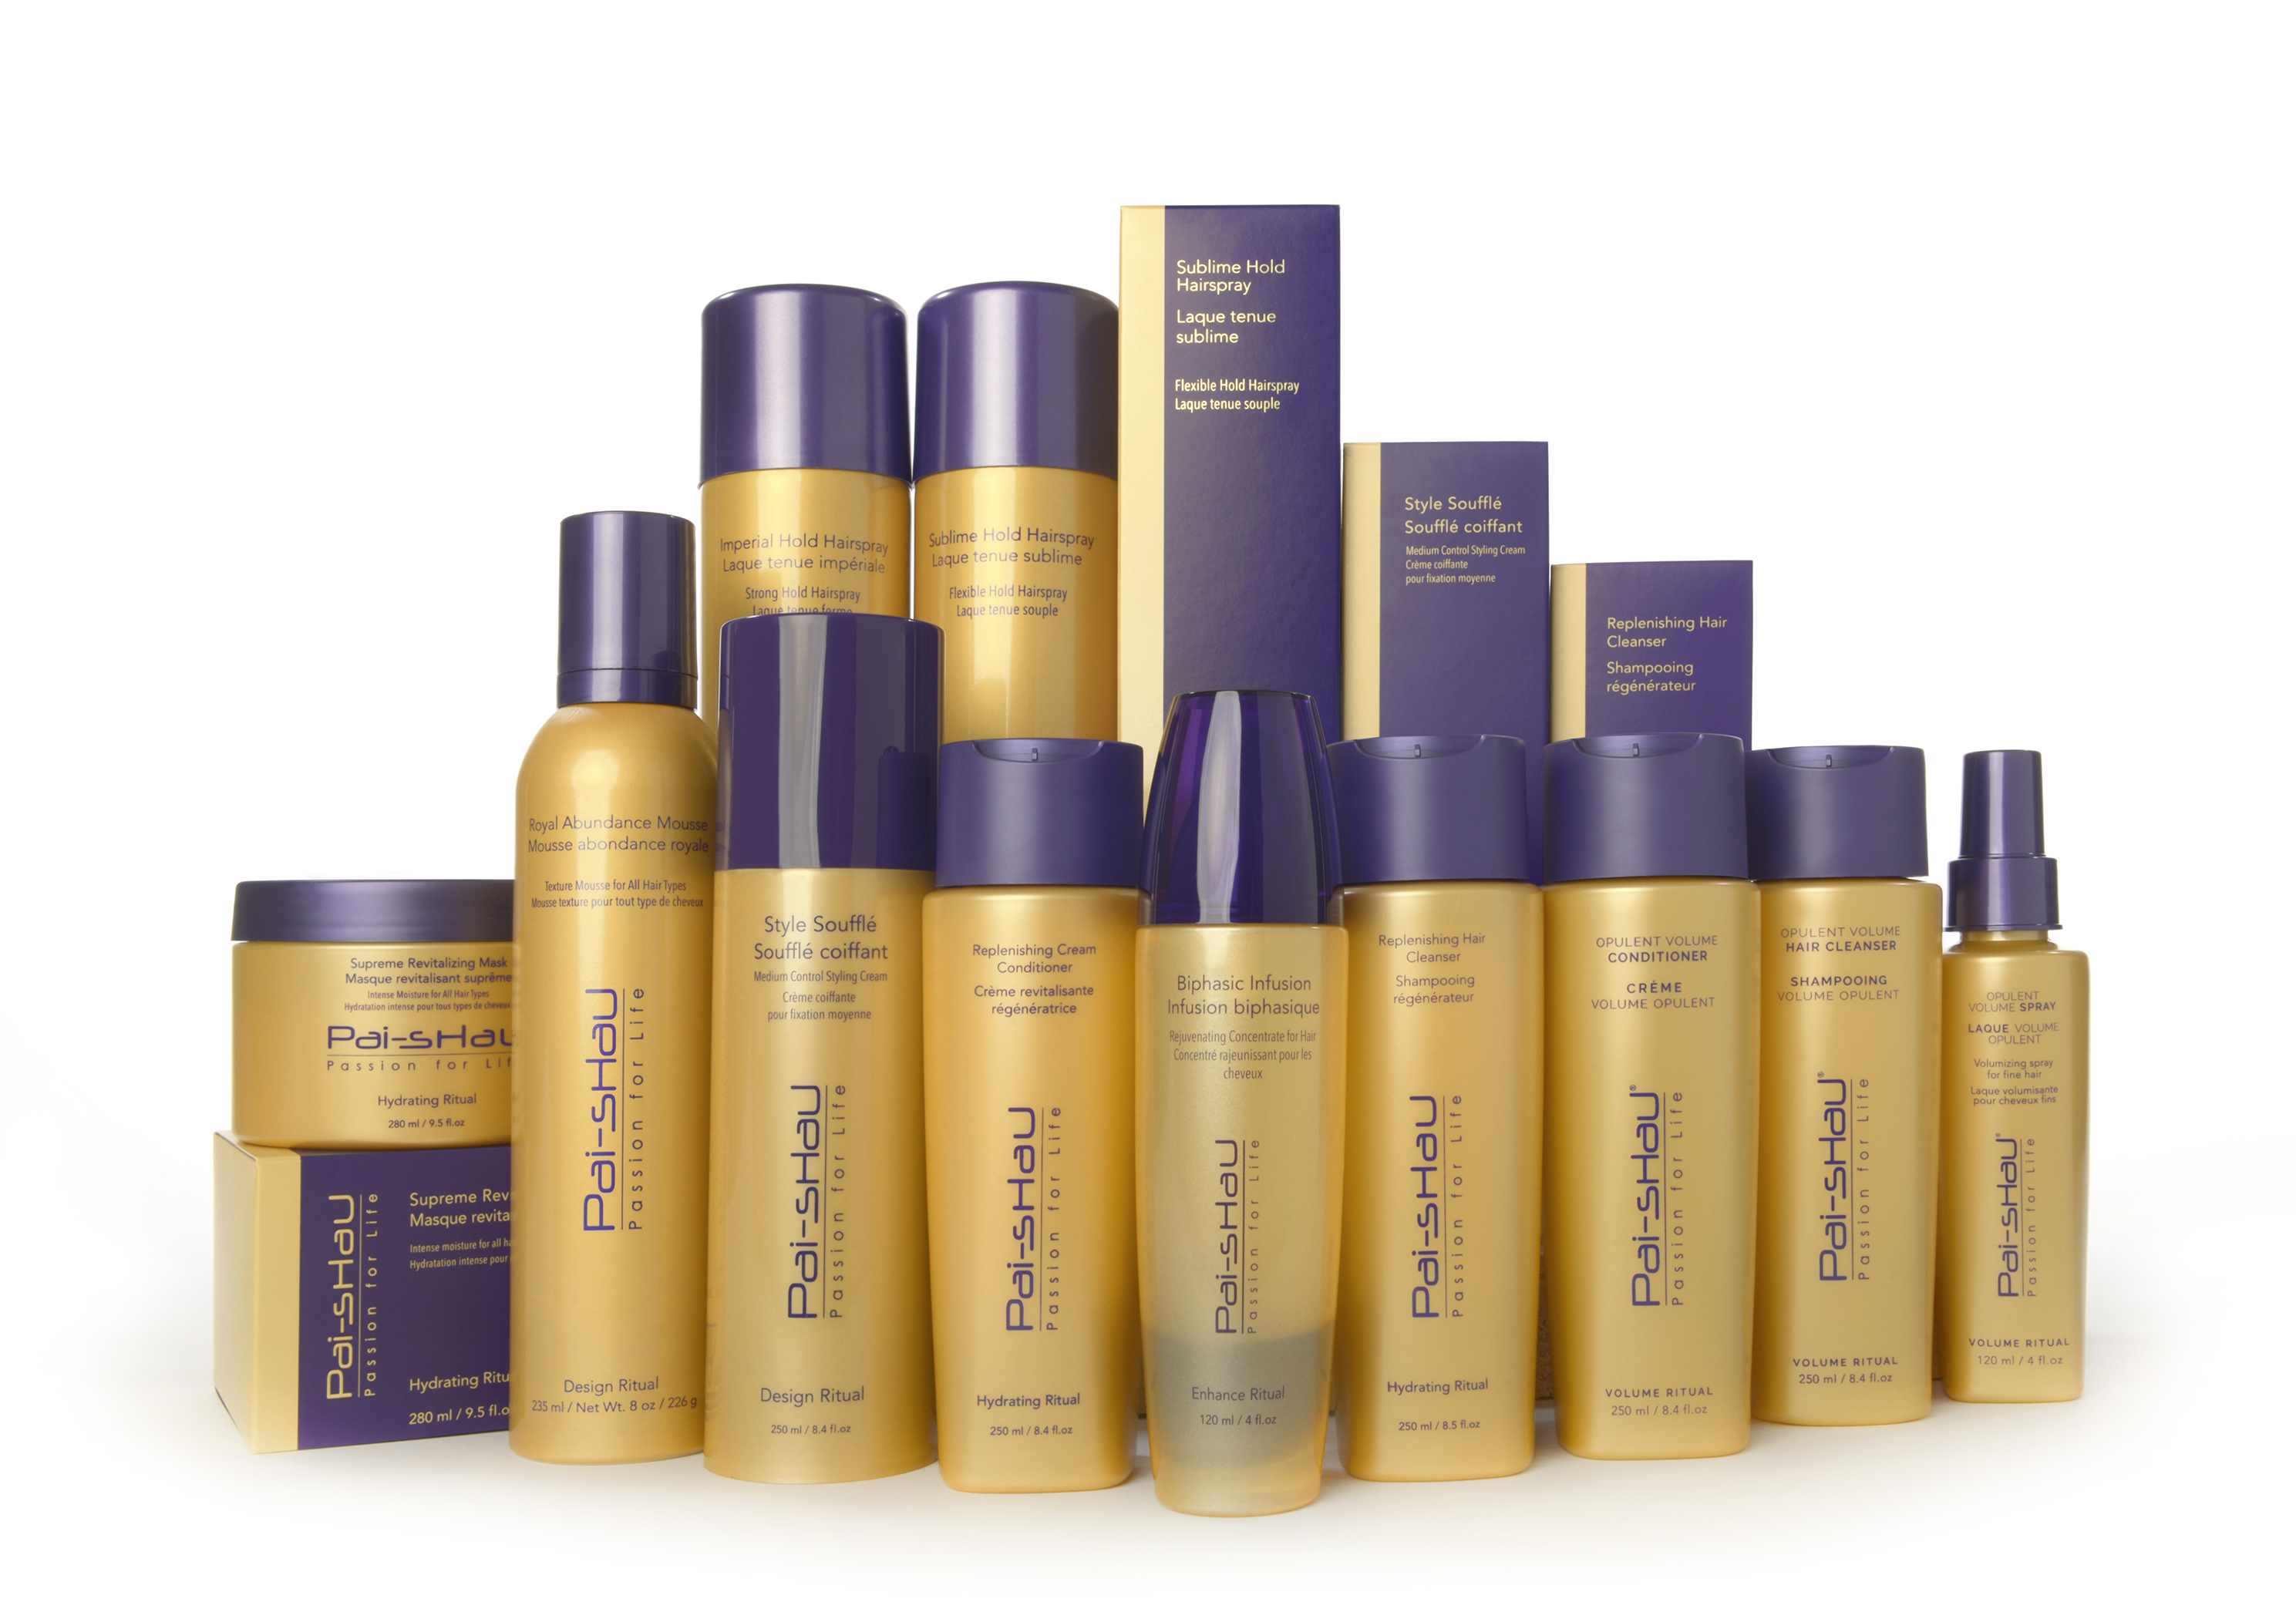 paishau cited as one of the top ten professional hair